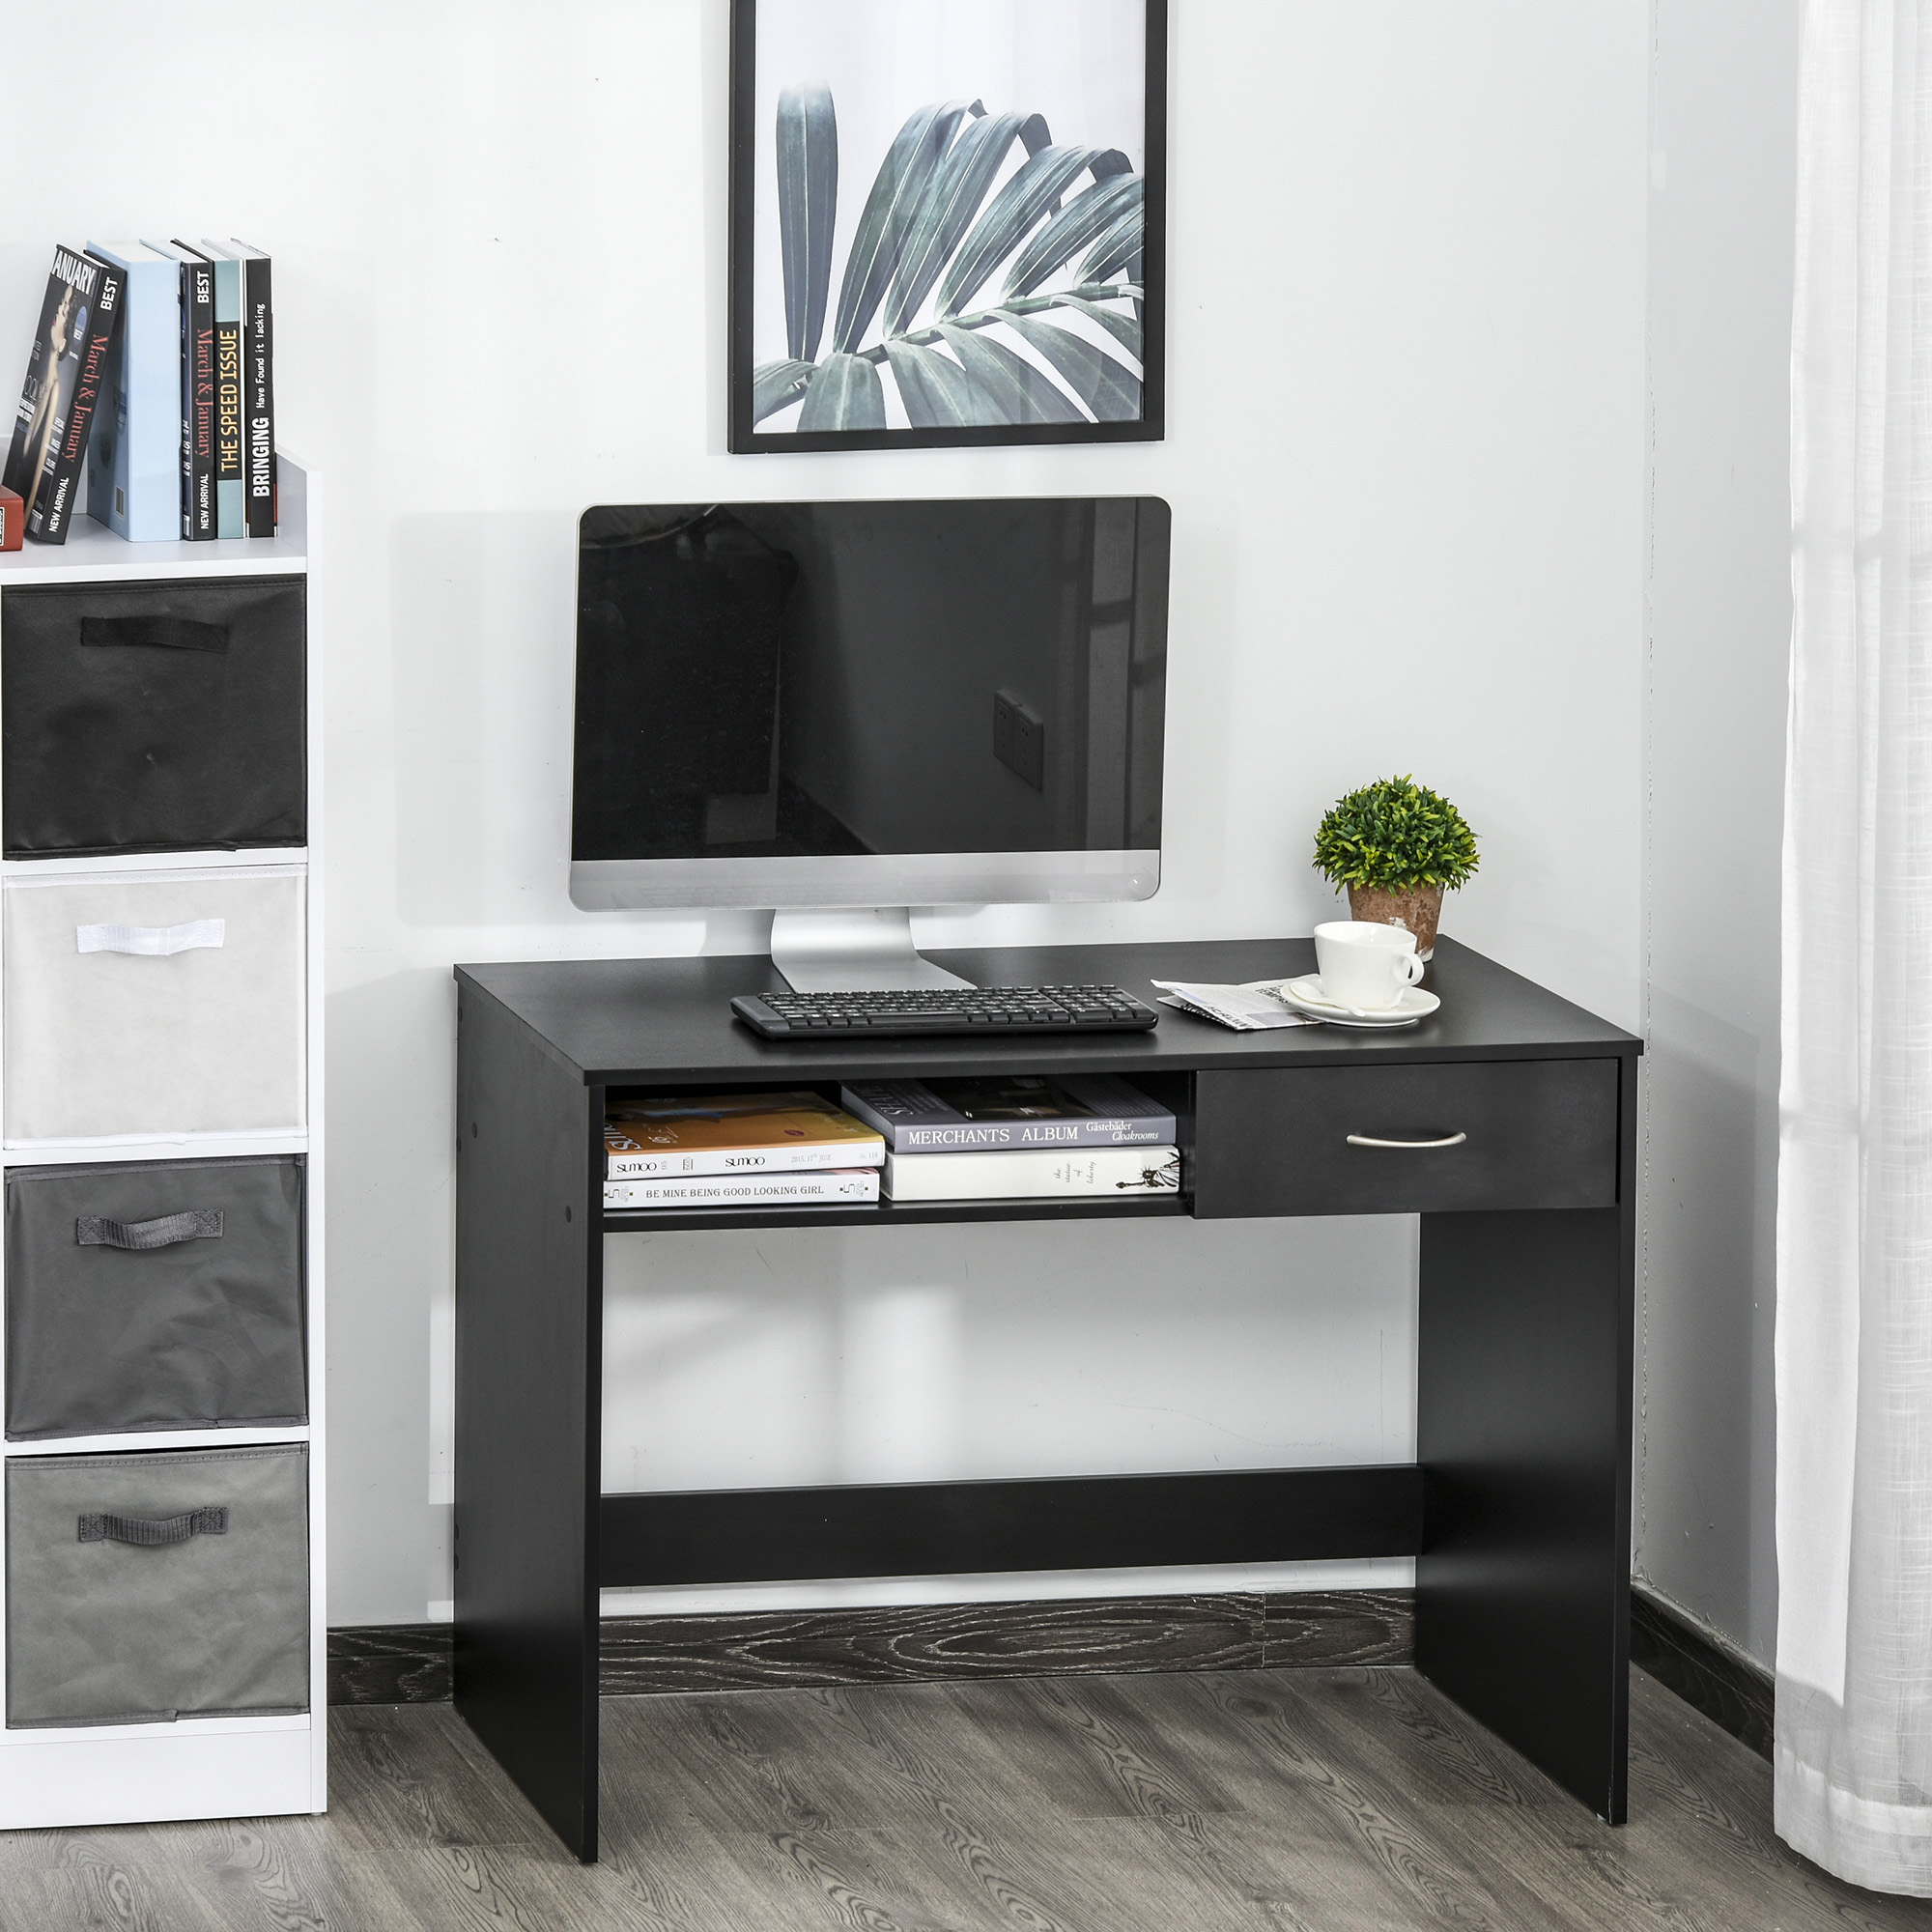 Image of: Homcom Modern Computer Study Desk Wooden Table Workstation With Drawer Storage Shelf For Home Office Study Black Writing Home Office Aosom Canada